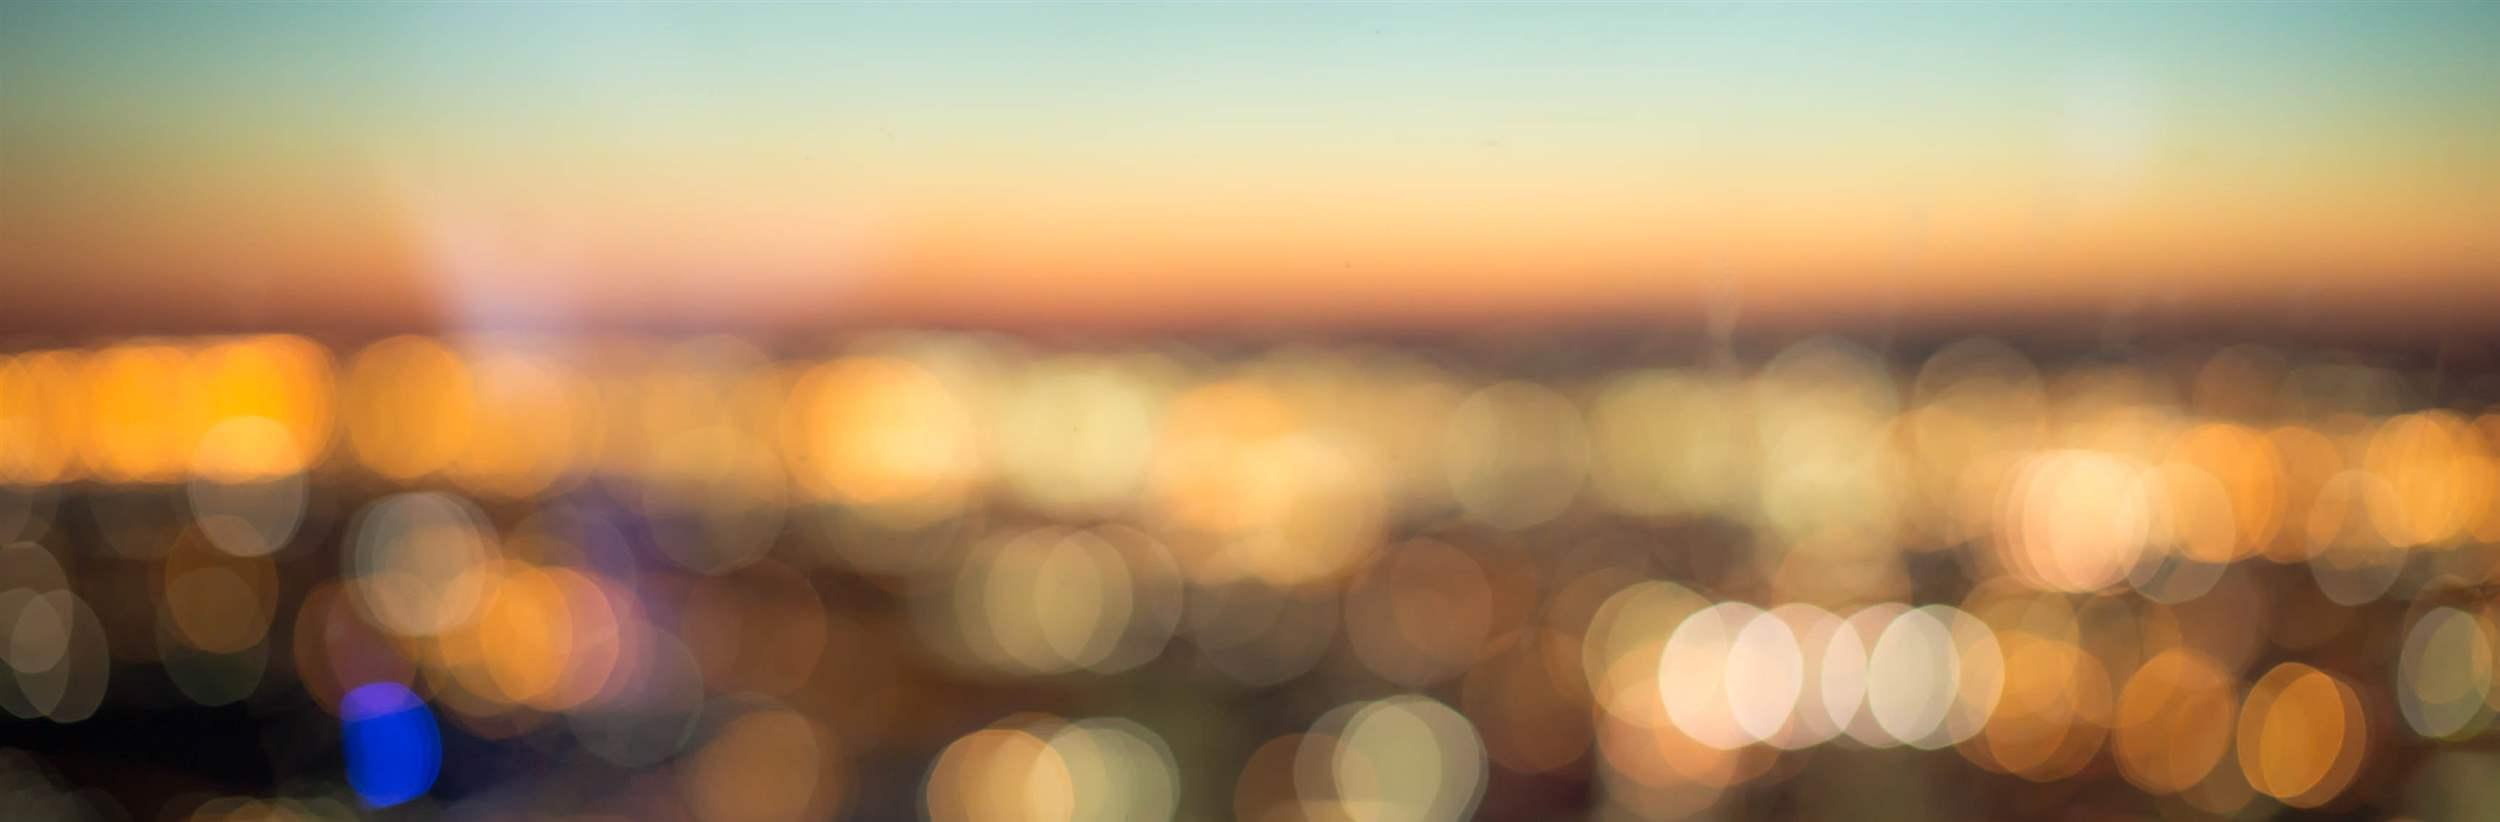 abstract blurred aerial view of sunset over city